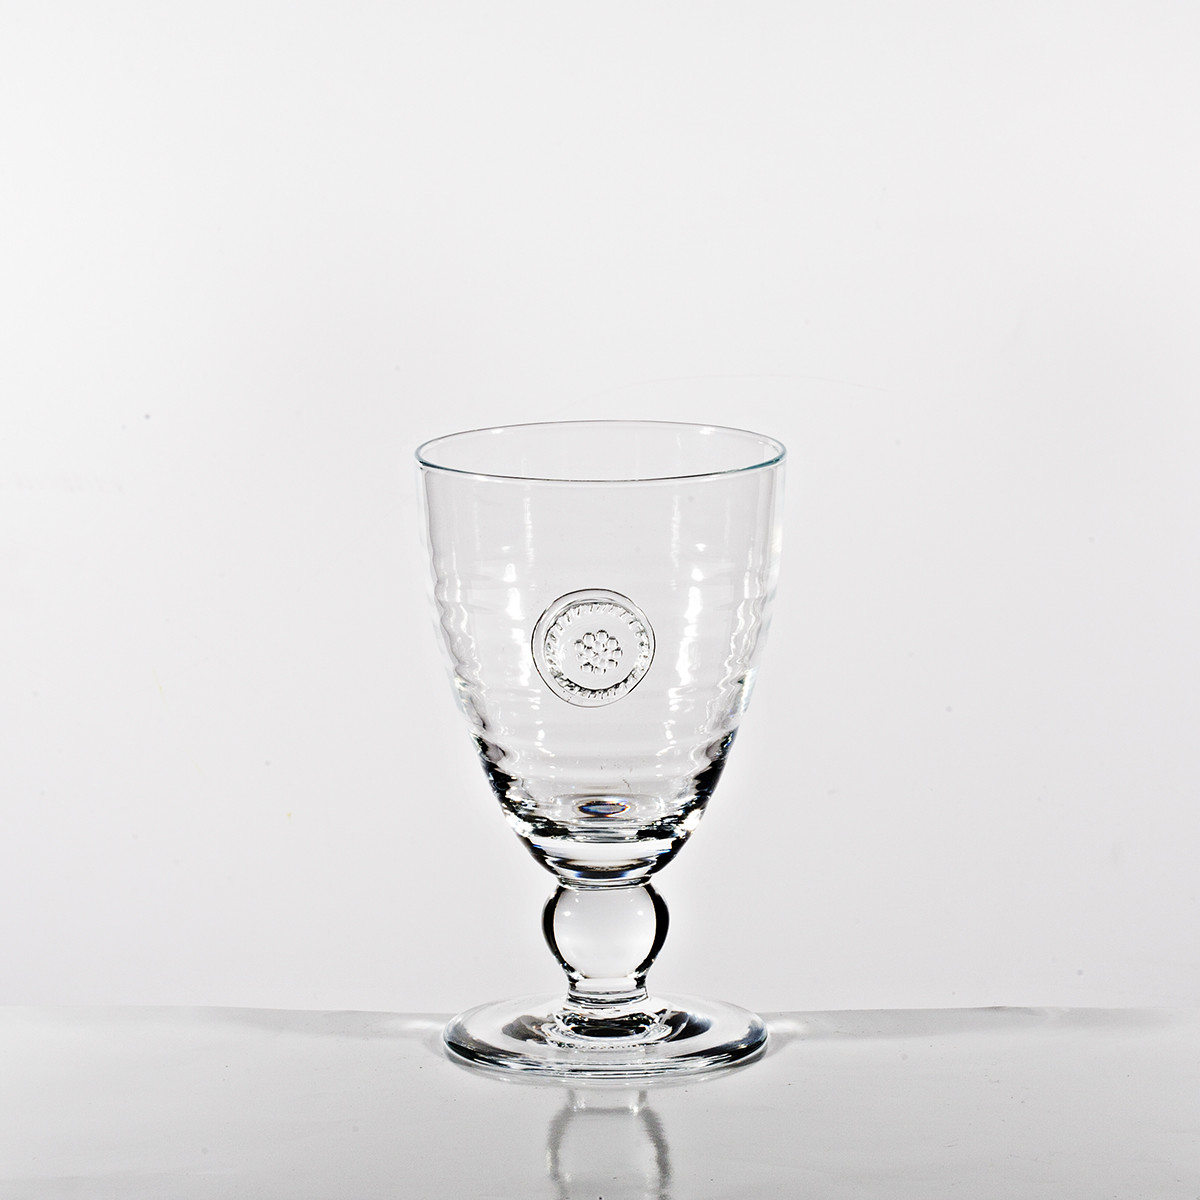 waterford footed vase of stem barware william ashley china intended for footed goblet 16 5cm 475ml